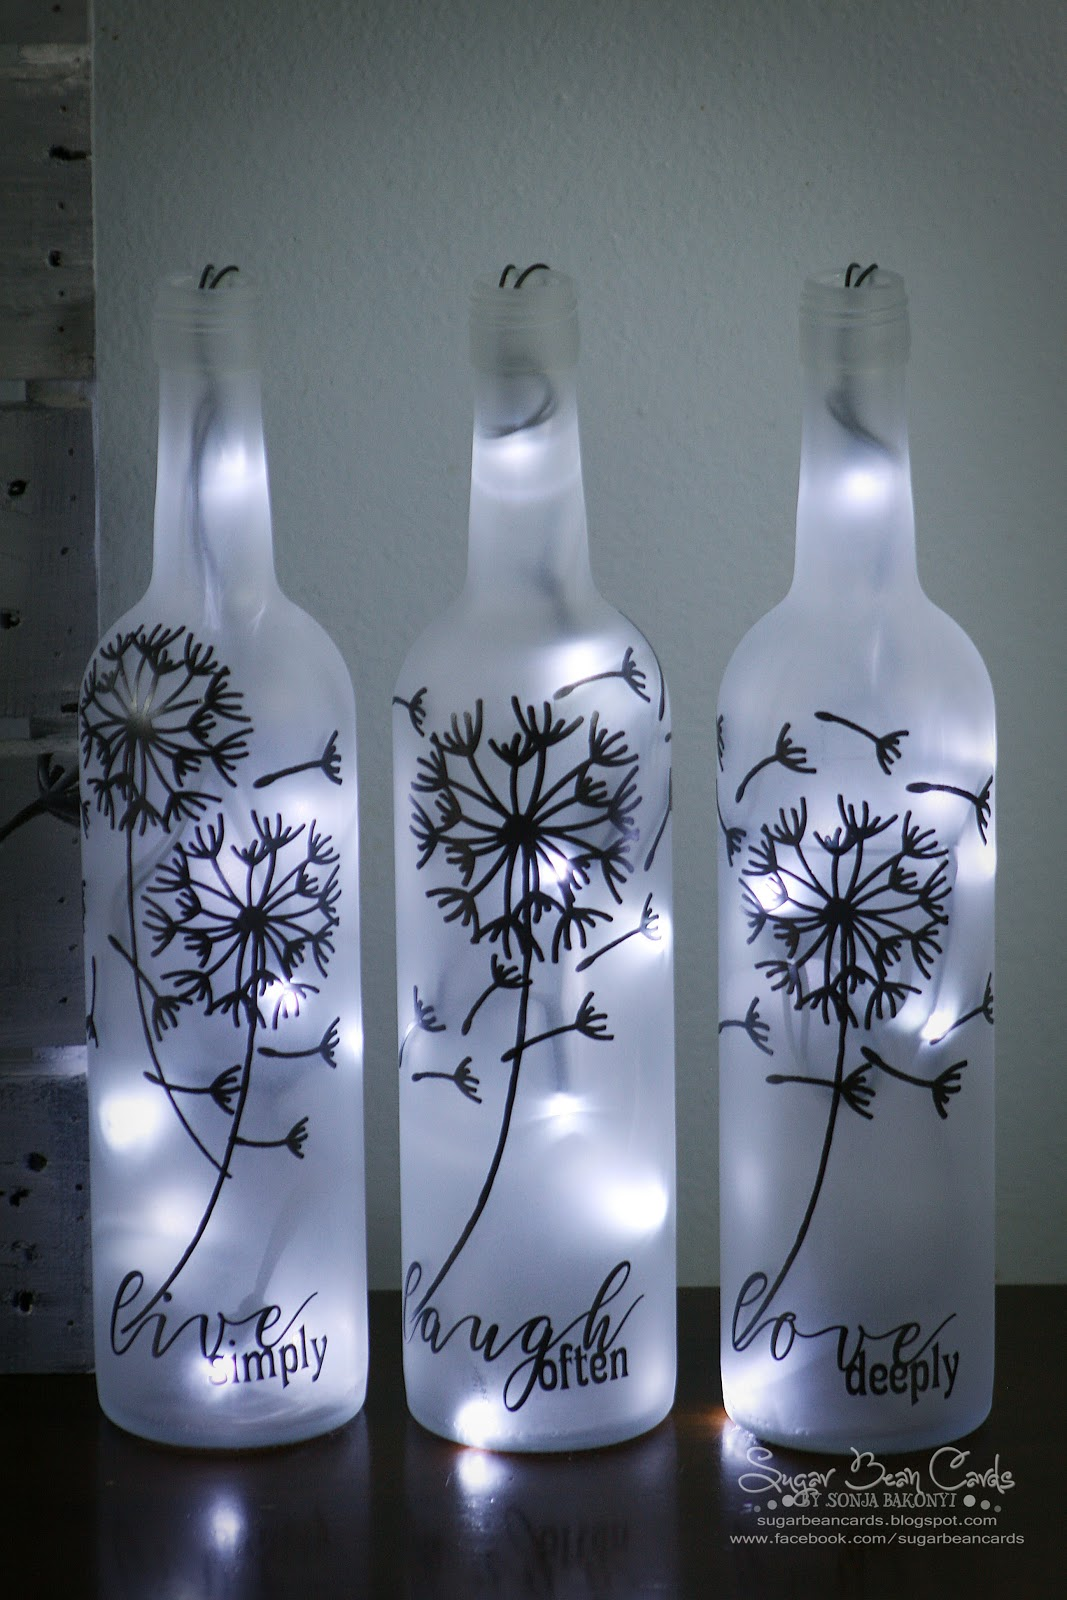 171743553874 also How To Build A Glass Bottle Chandelier further Ch agne Bottle Sparklers likewise Diy L e Flasche Selbermachen furthermore 299207968967421136. on led liquor bottles